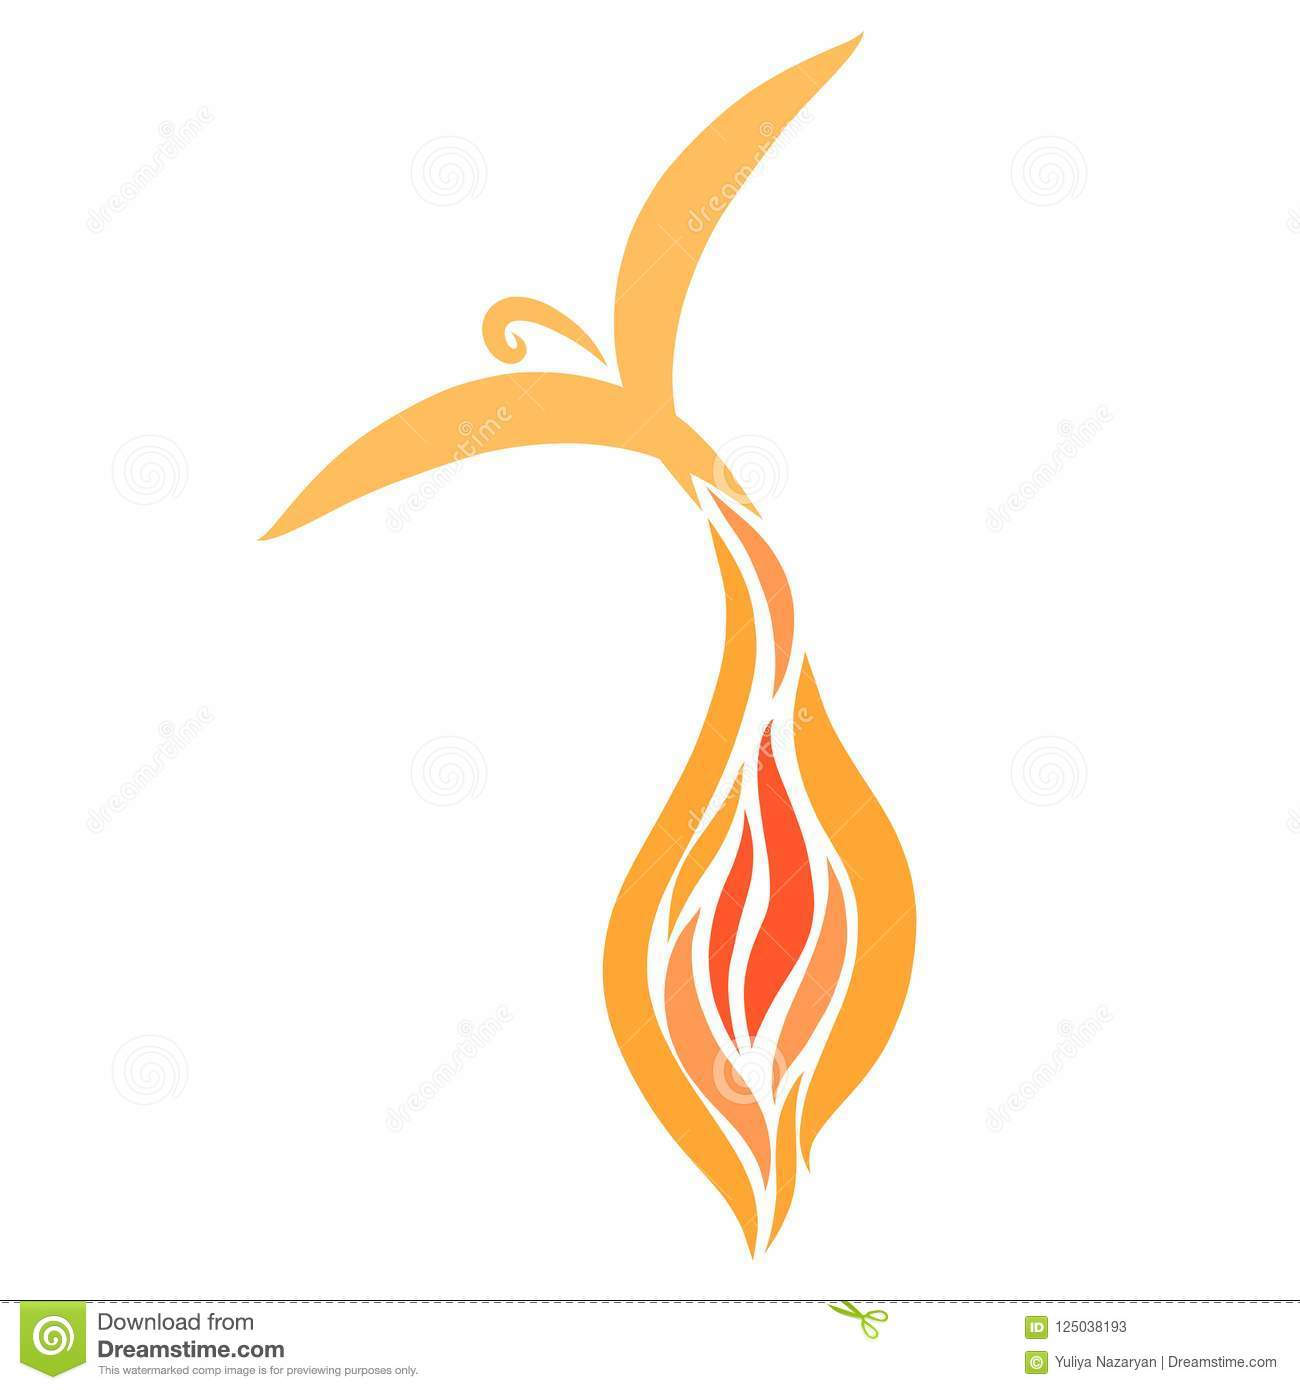 Miracle bird flying out of a flame of fire